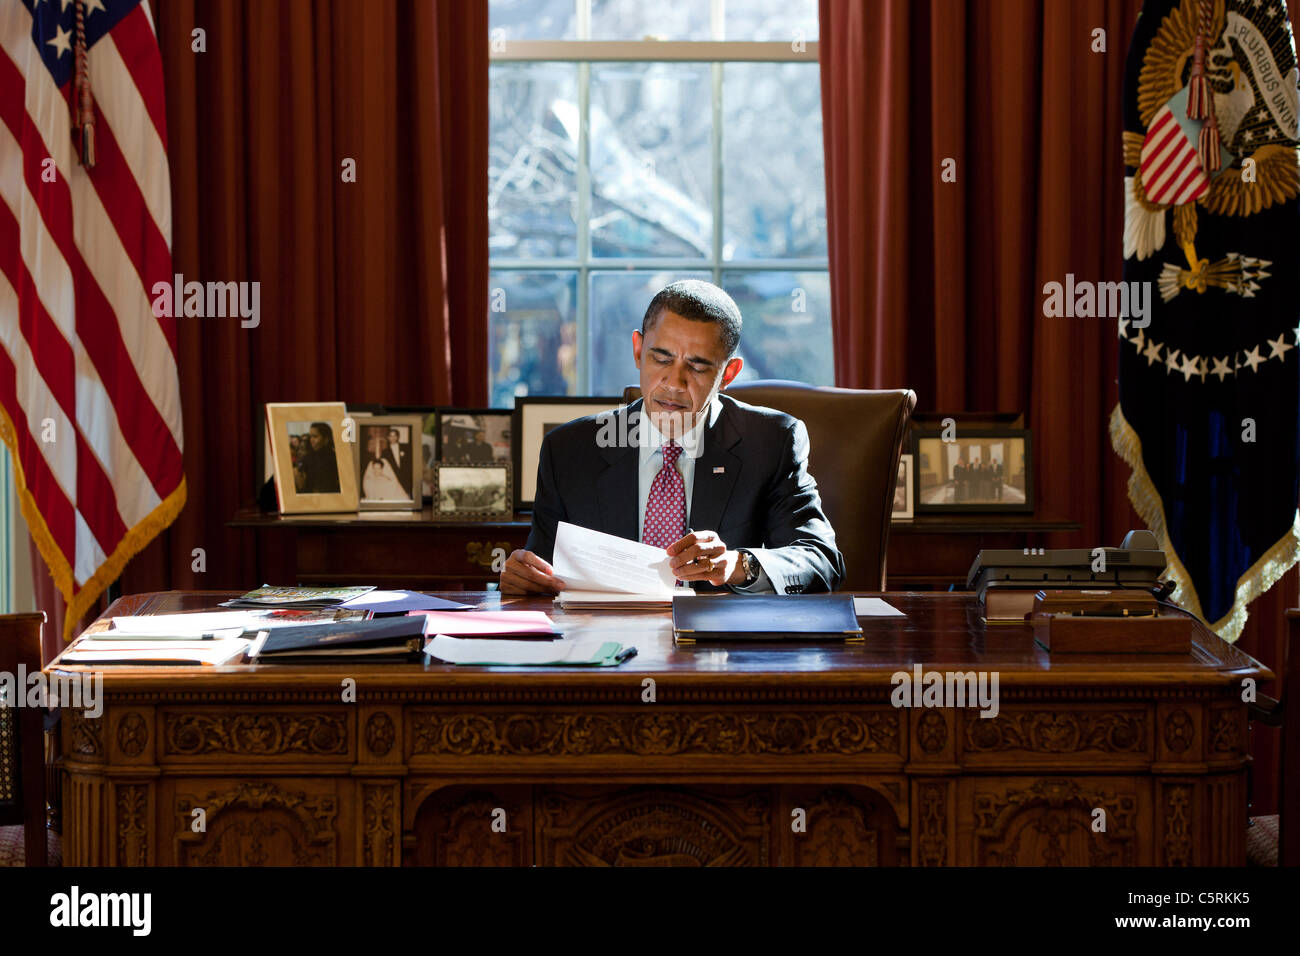 President Barack Obama reviews his prepared remarks on Egypt at the Resolute Desk in the Oval Office, Feb. 11, 2011. - Stock Image